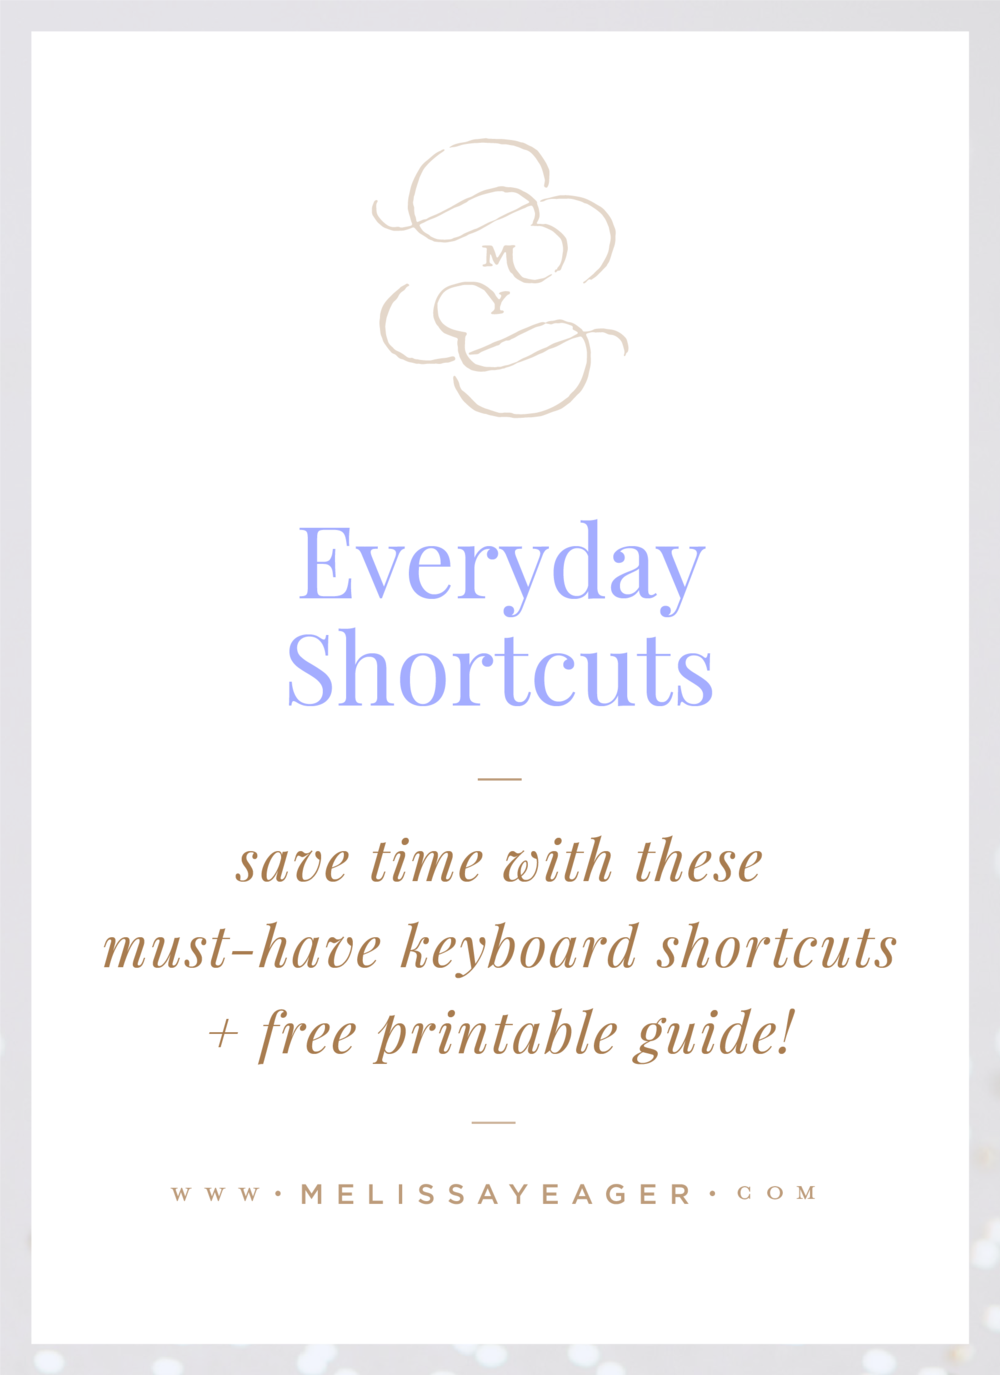 Everyday Shortcuts - save time with these must-have keyboard shortcuts + free printable guide!